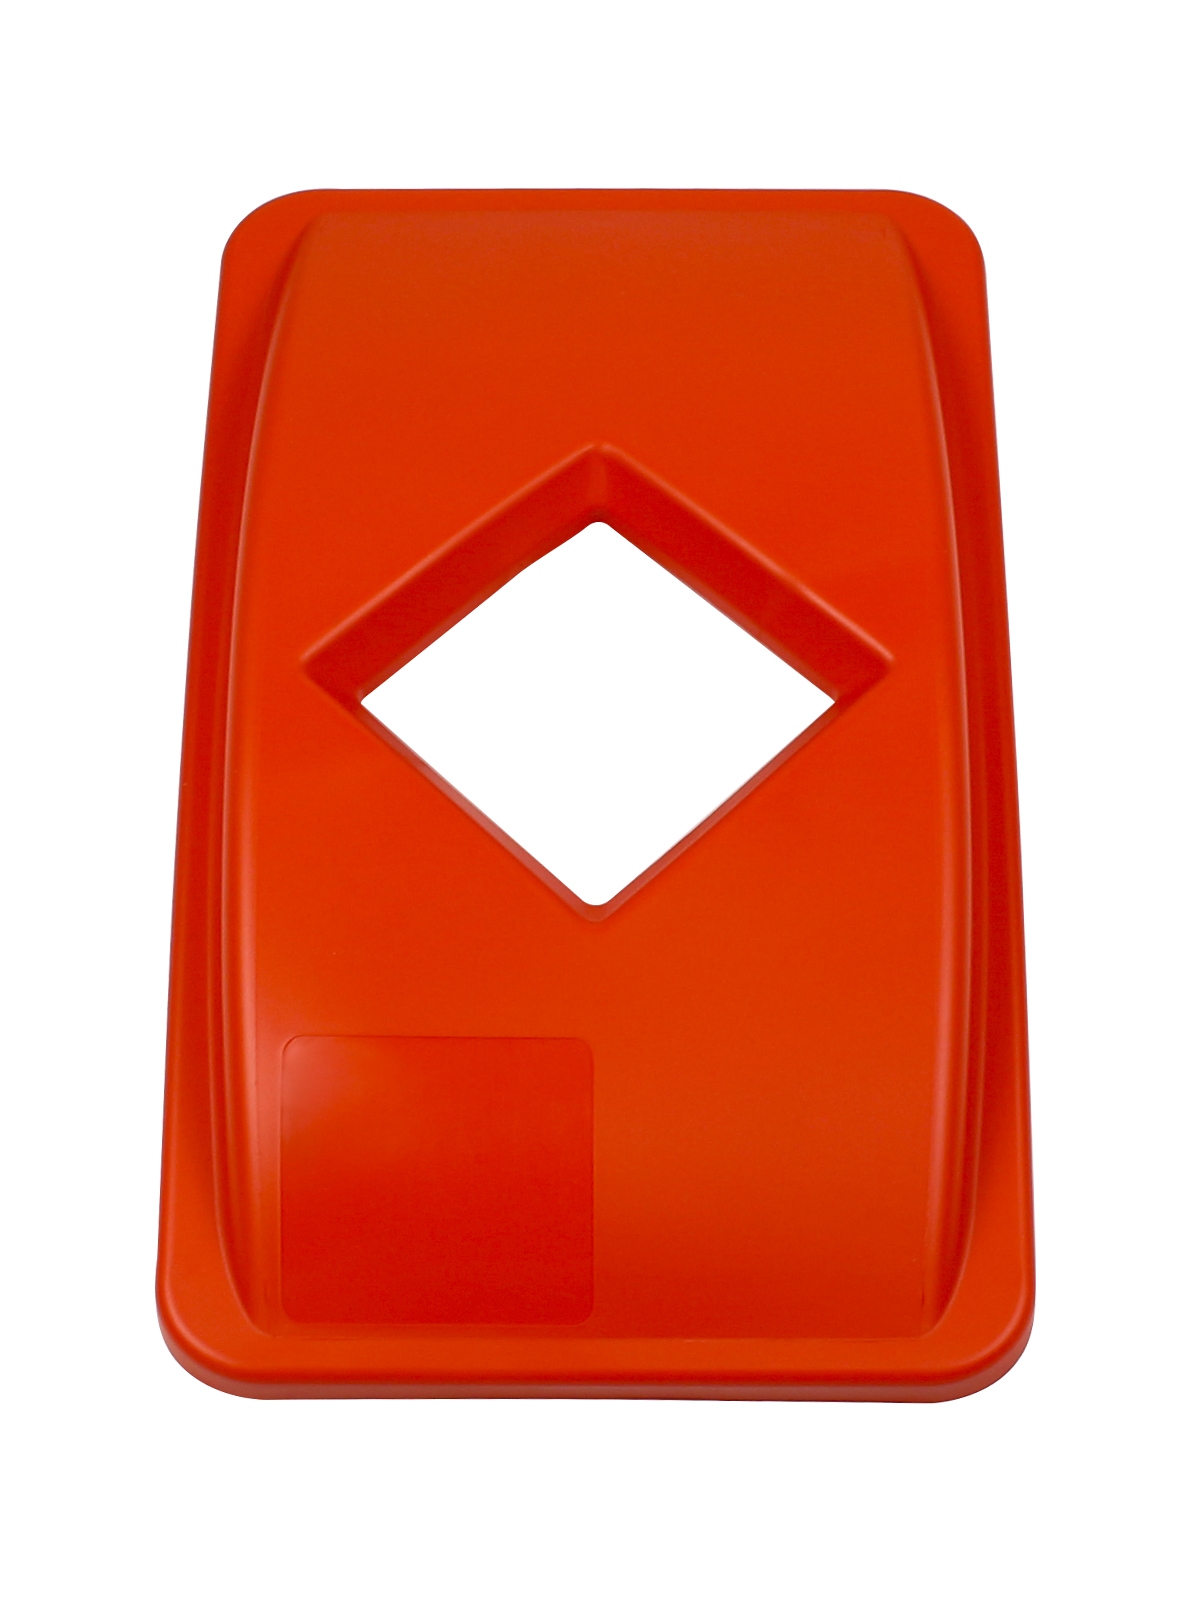 WASTE WATCHER - Lid - Diamond - Orange